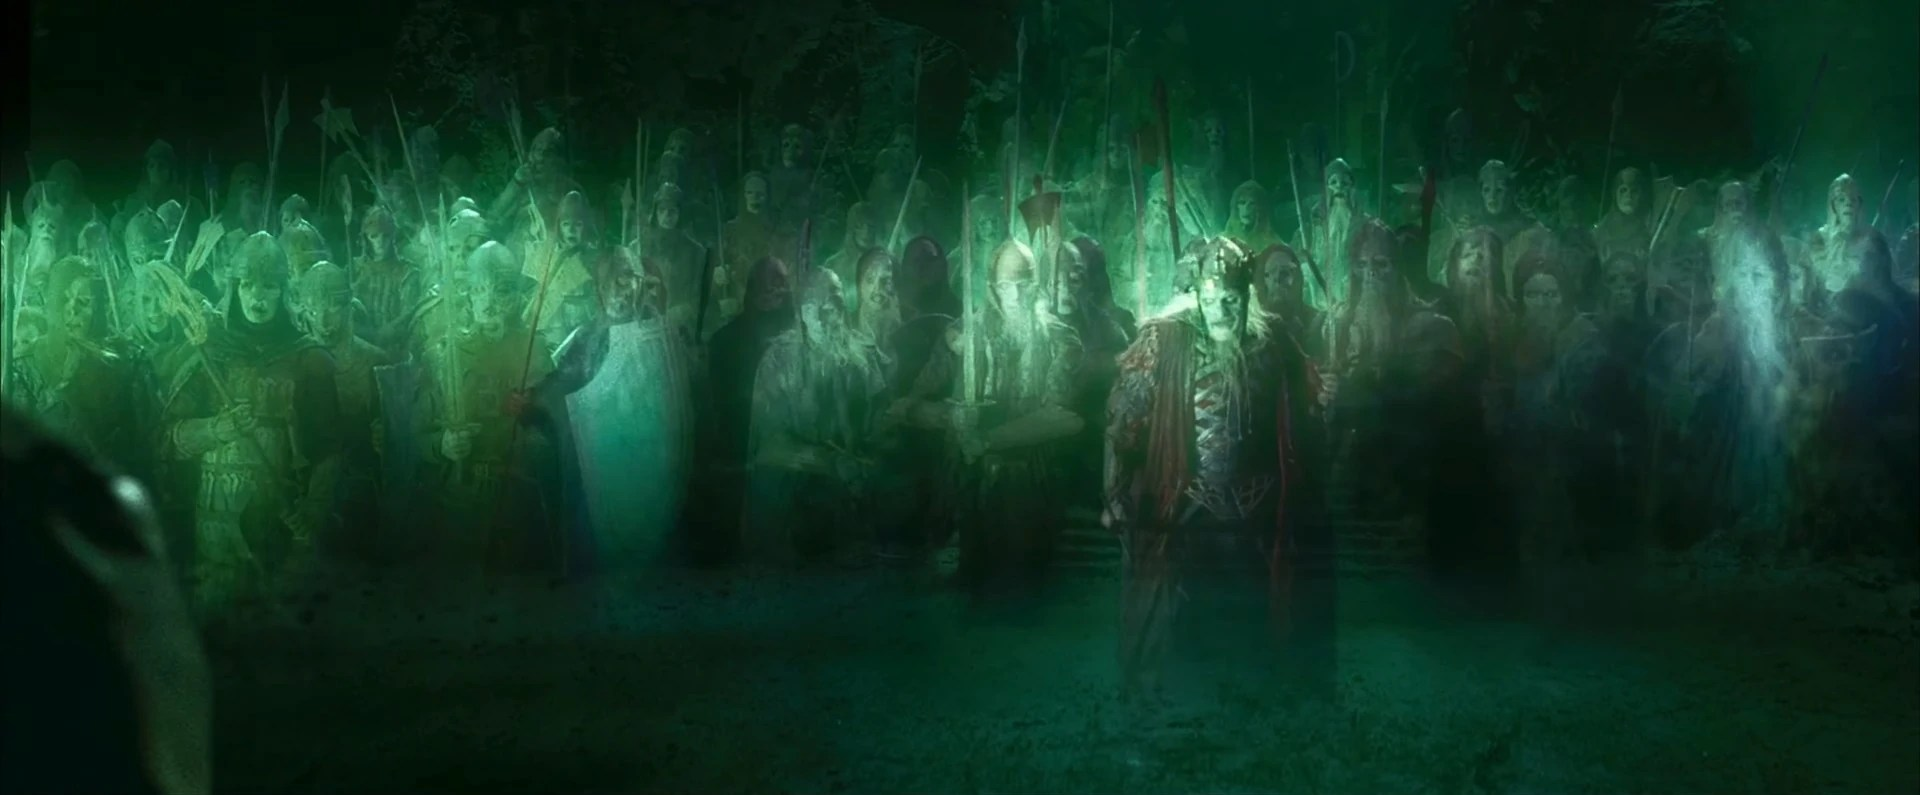 https://i0.wp.com/images2.wikia.nocookie.net/__cb20130319231540/lotr/images/a/a2/Army_of_the_dead.jpg